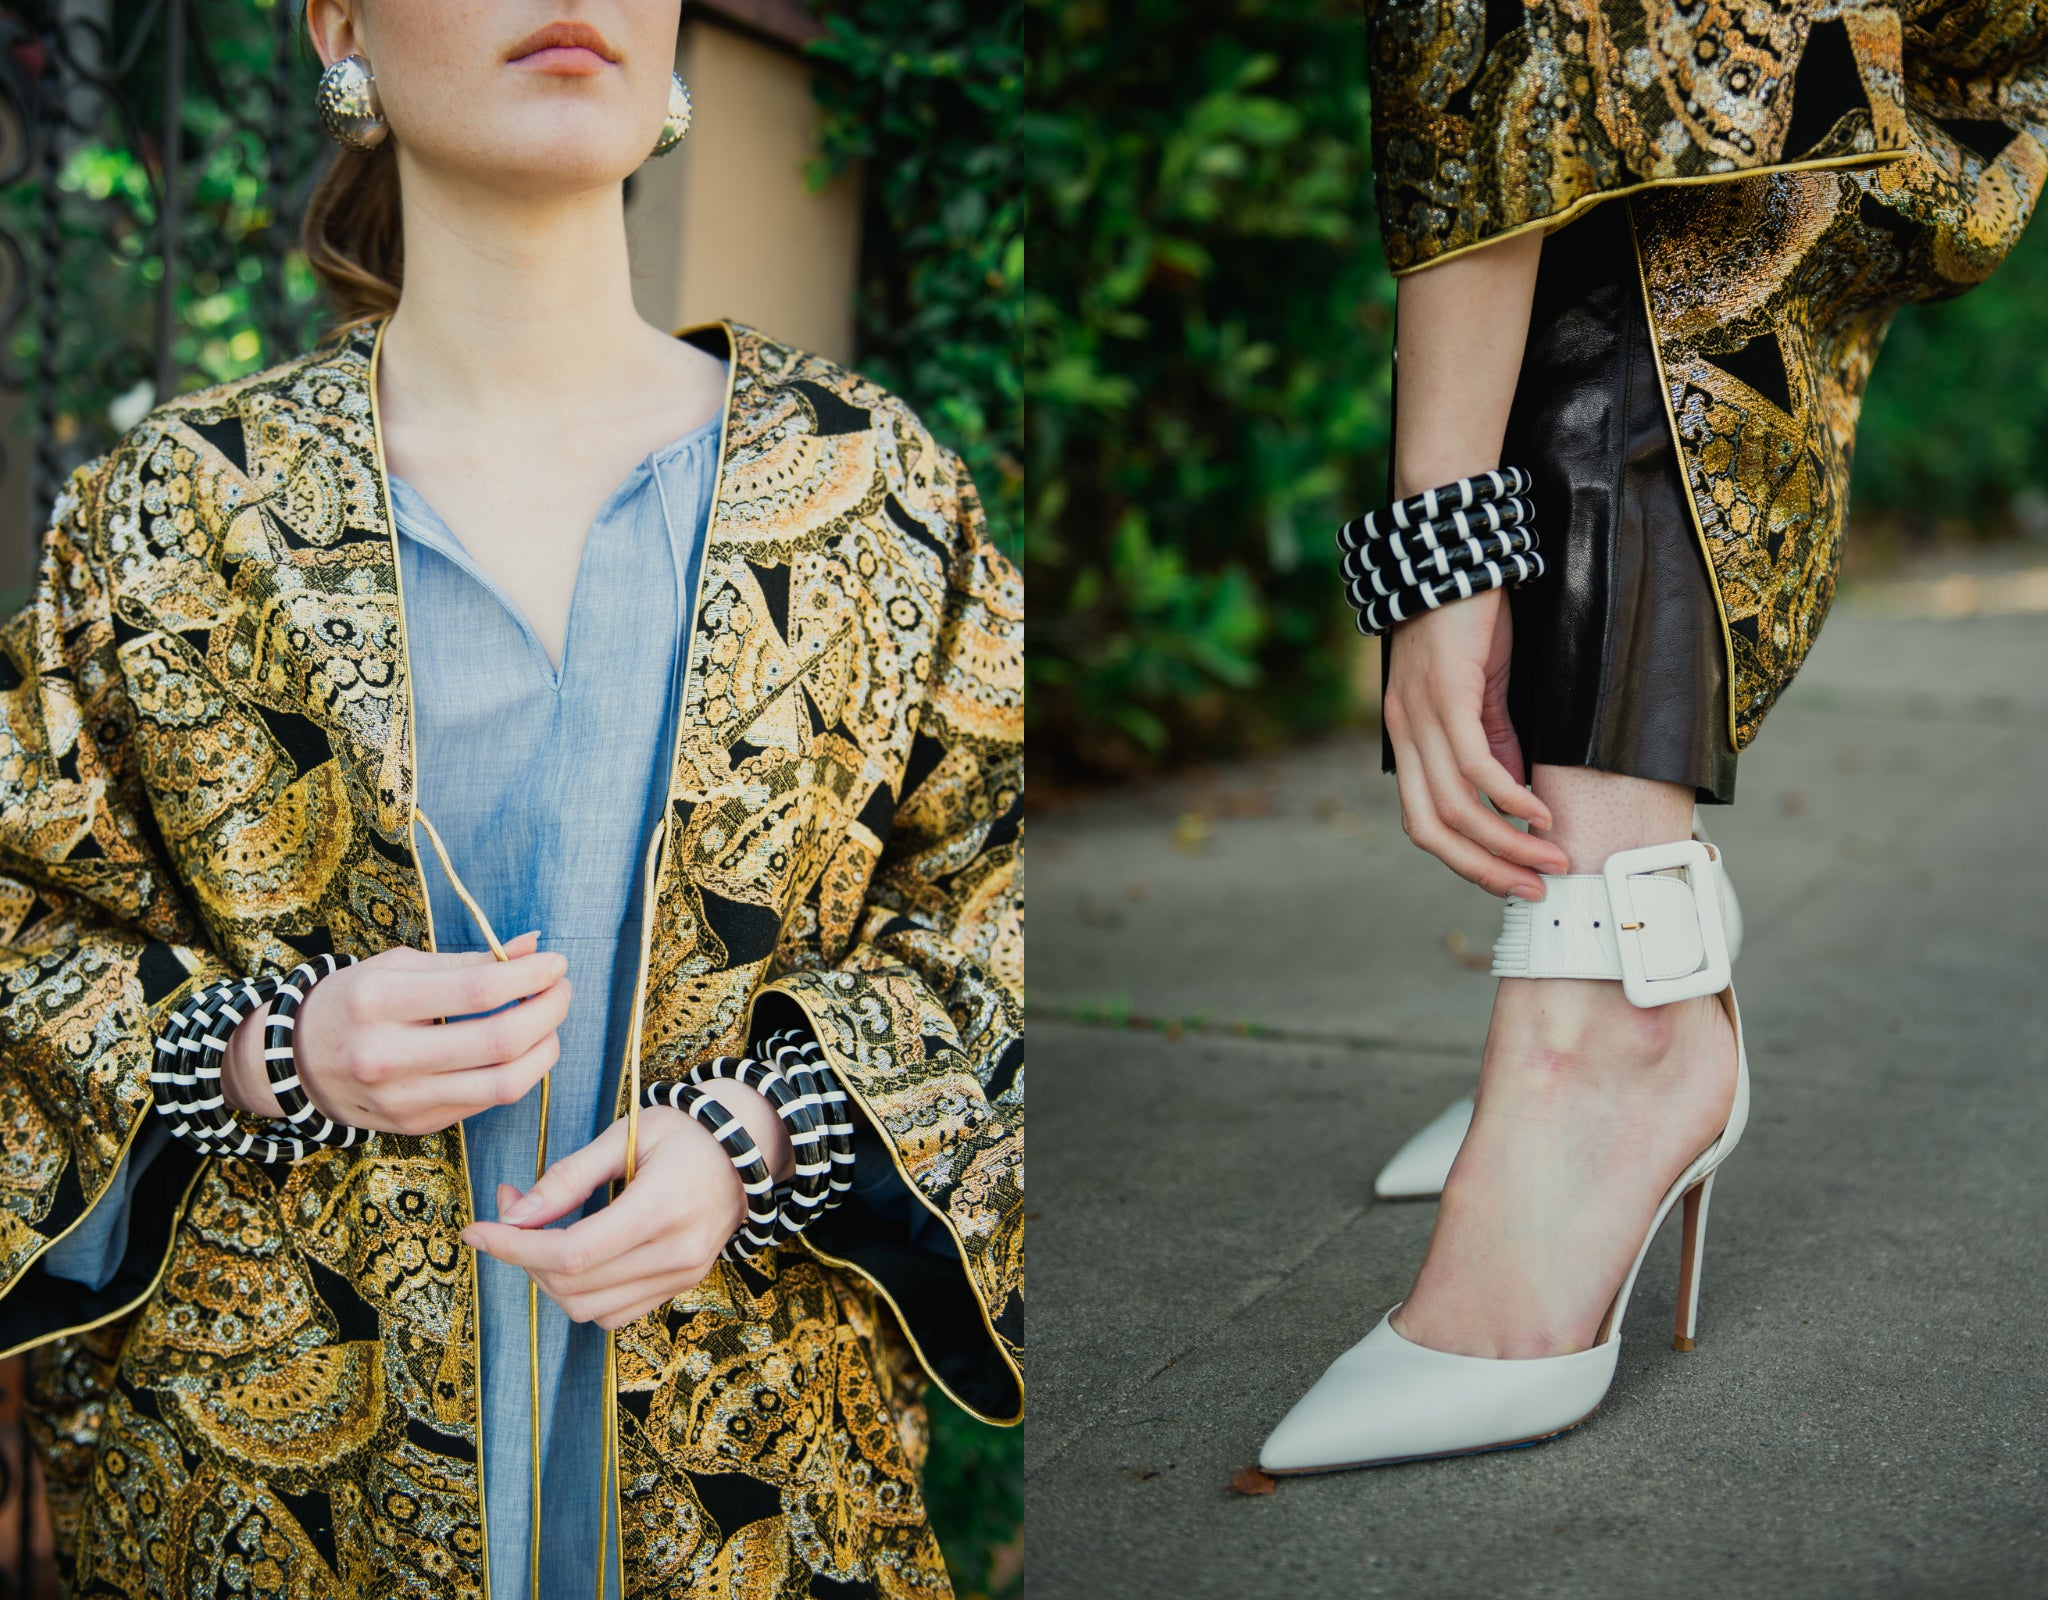 Girl in gold brocade Anthony Muto Cocoon coat leather pants & white heel front of gated shrubs